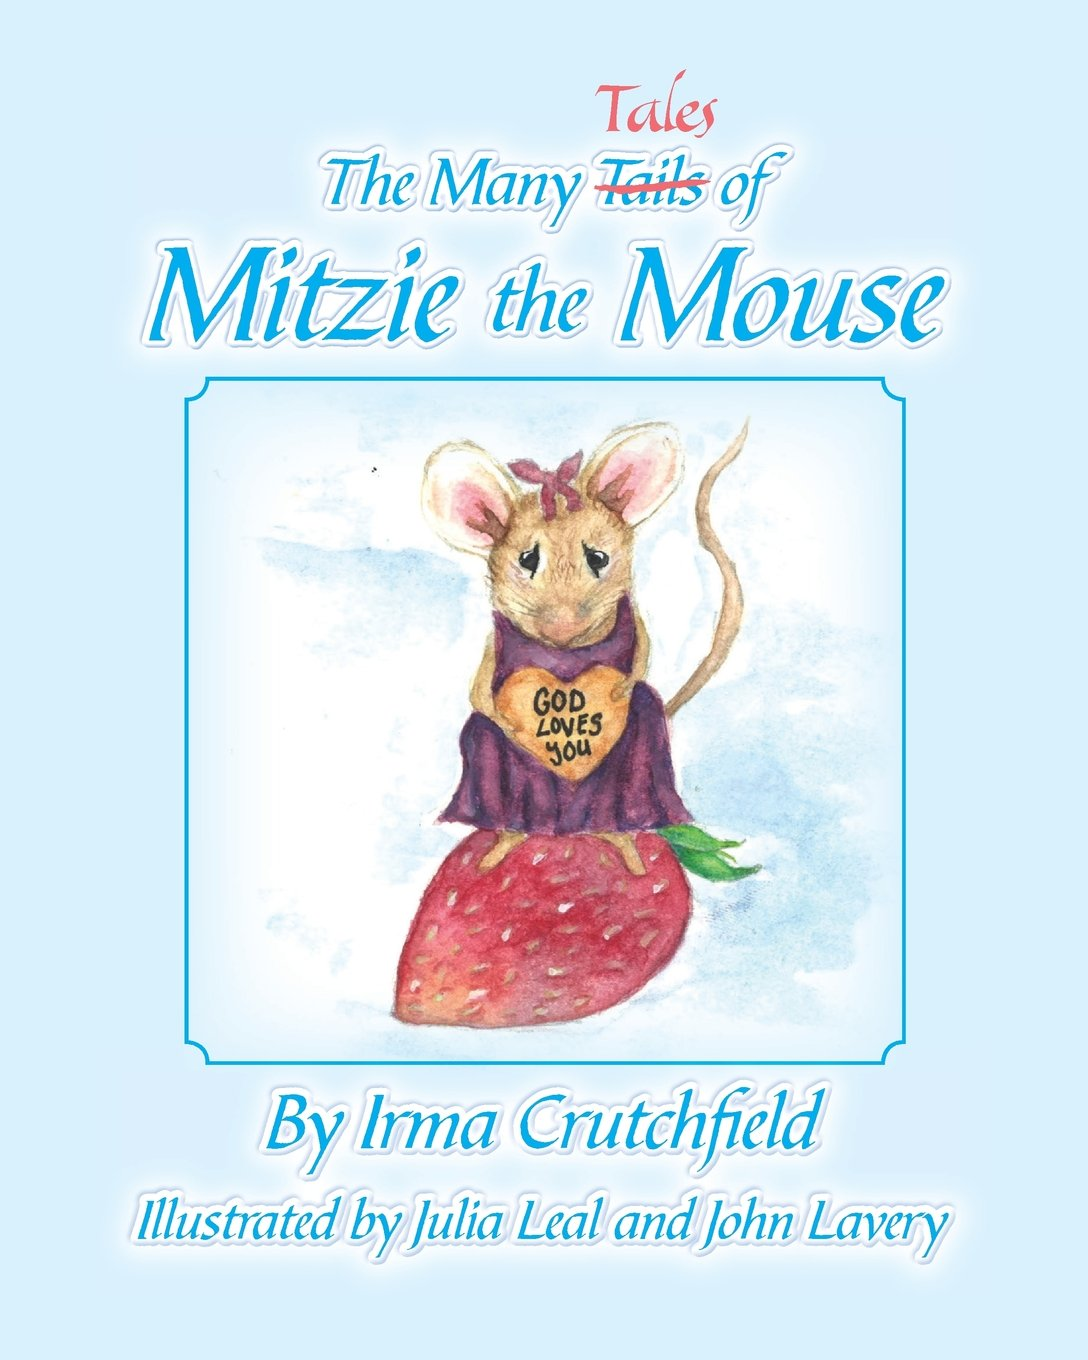 The Many Tales of Mitzie Mouse